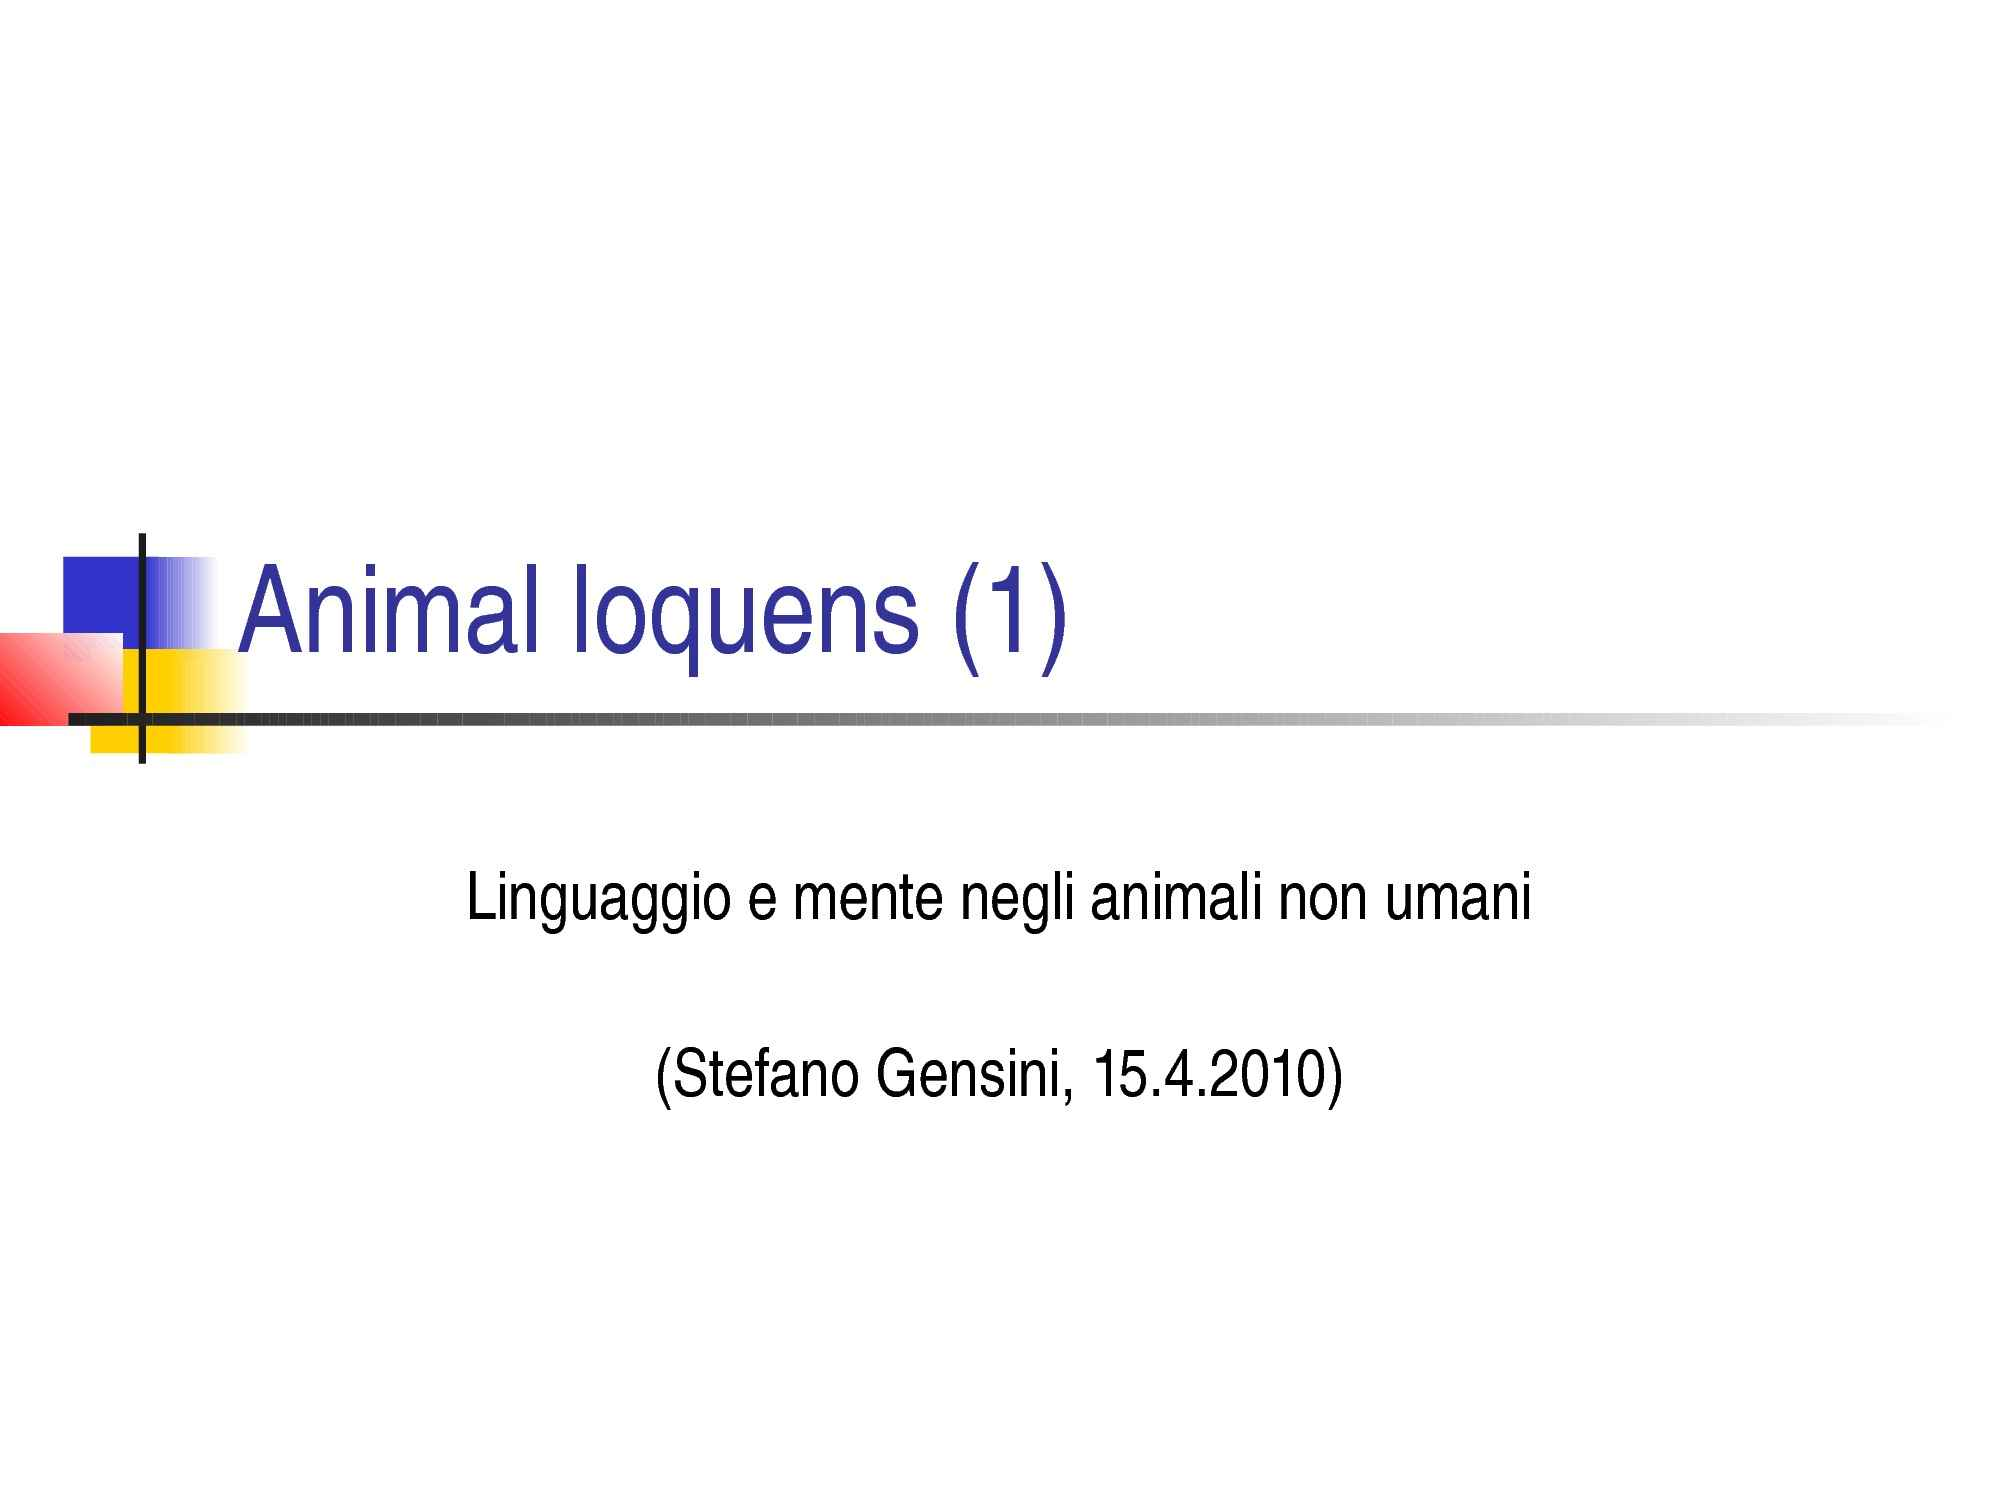 Animal loquens - Animali e filosofi